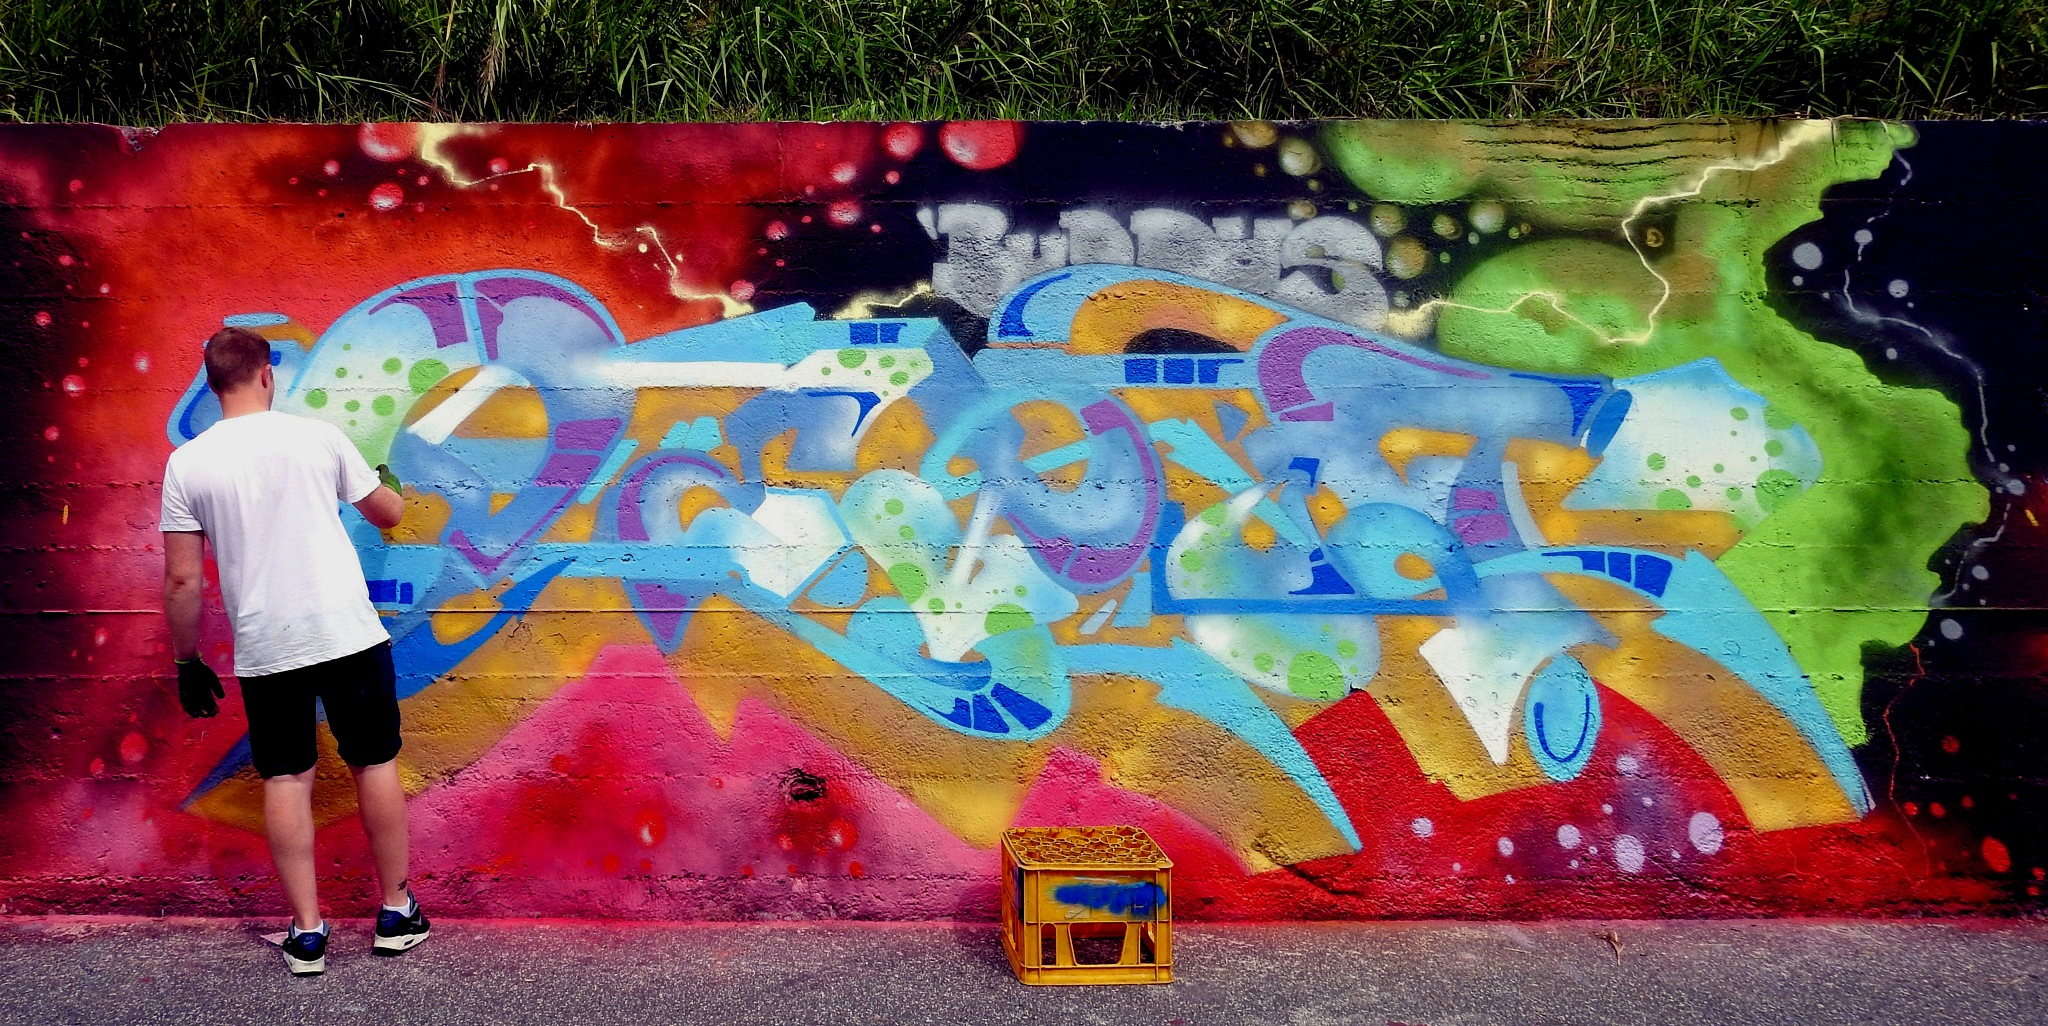 Naples Bagnoli - Street artist In Action! - Back To The Style - 2016 - 1 by Arnaldo De Lisio